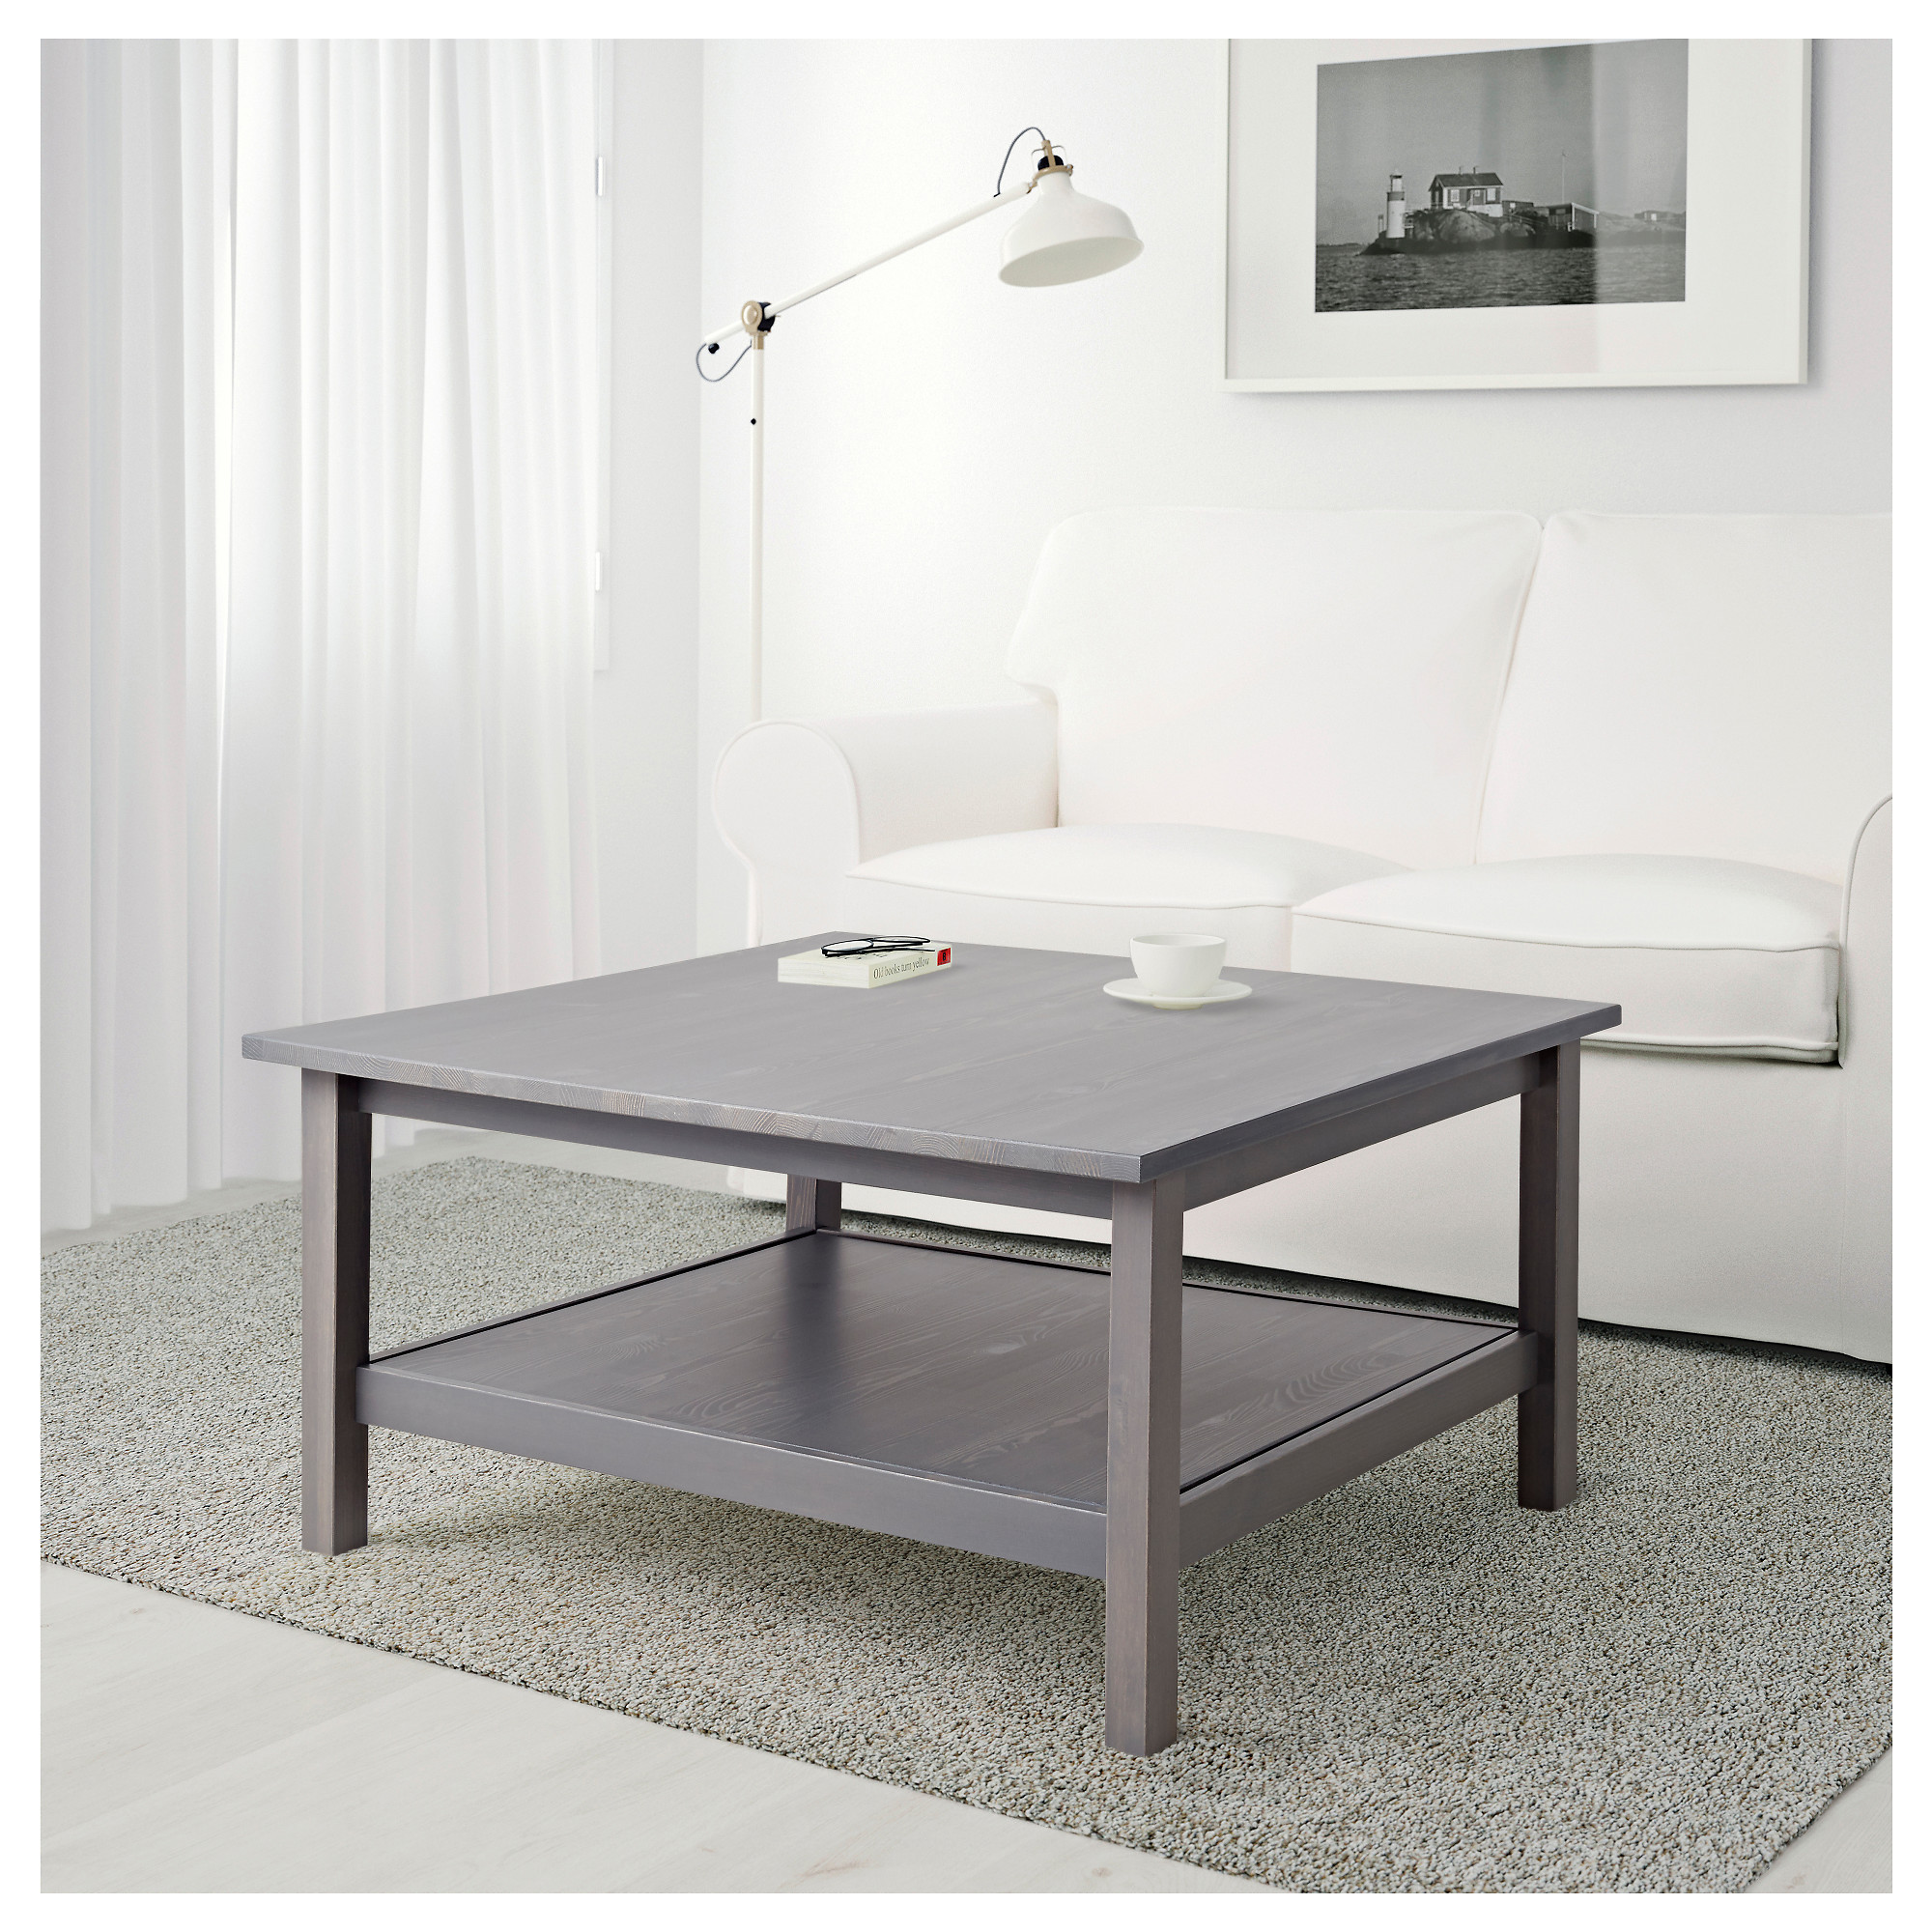 hemnes coffee table dark gray stained ikea